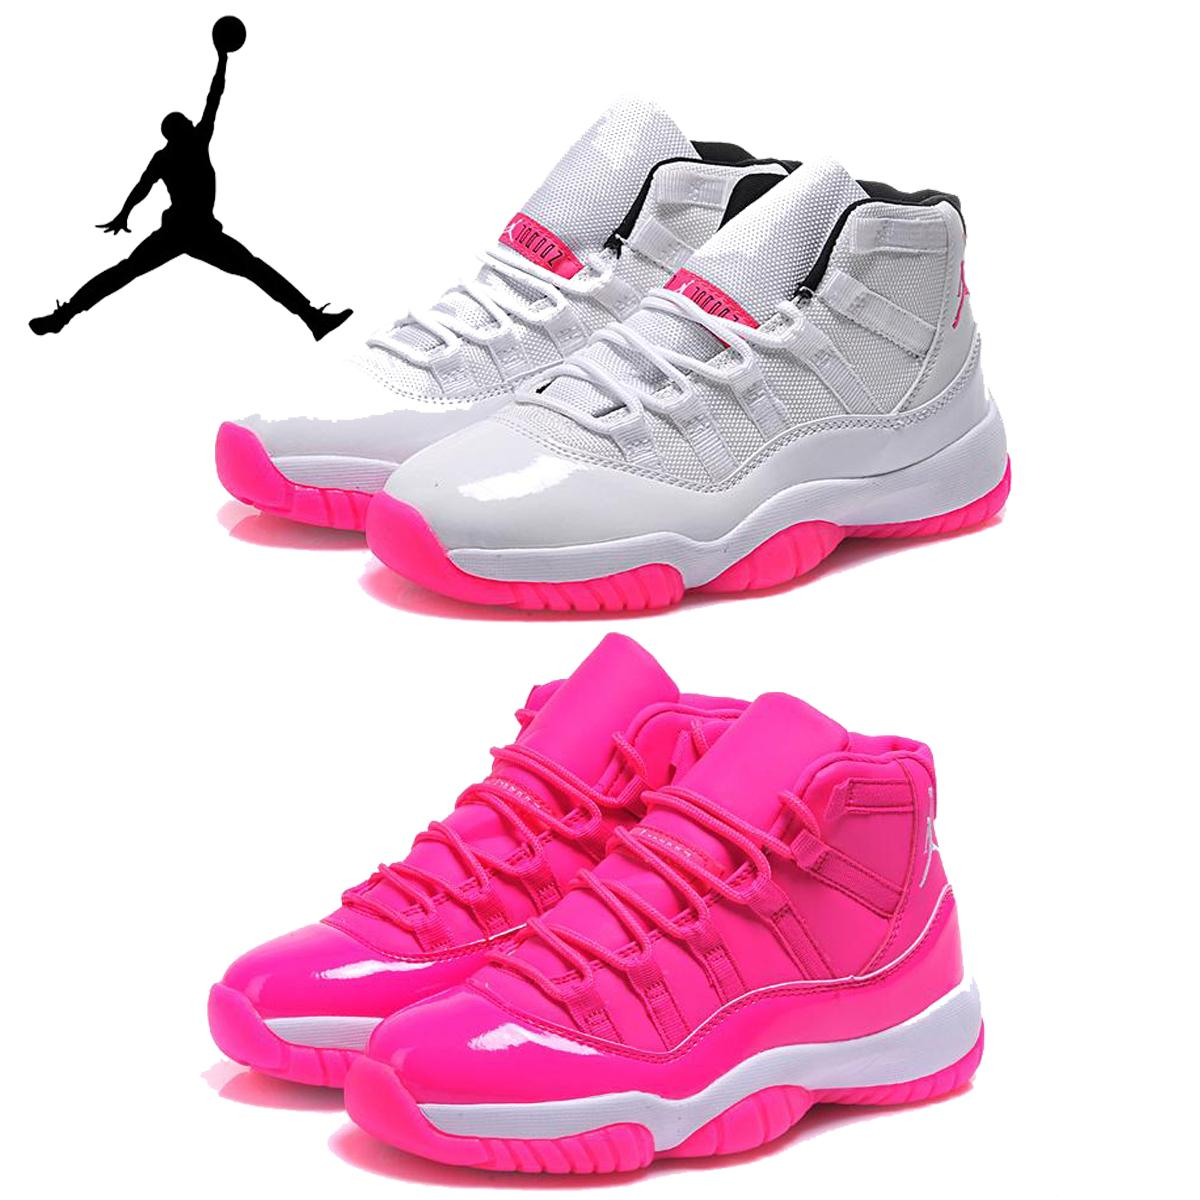 Hot Pink Womens Basketball Shoes